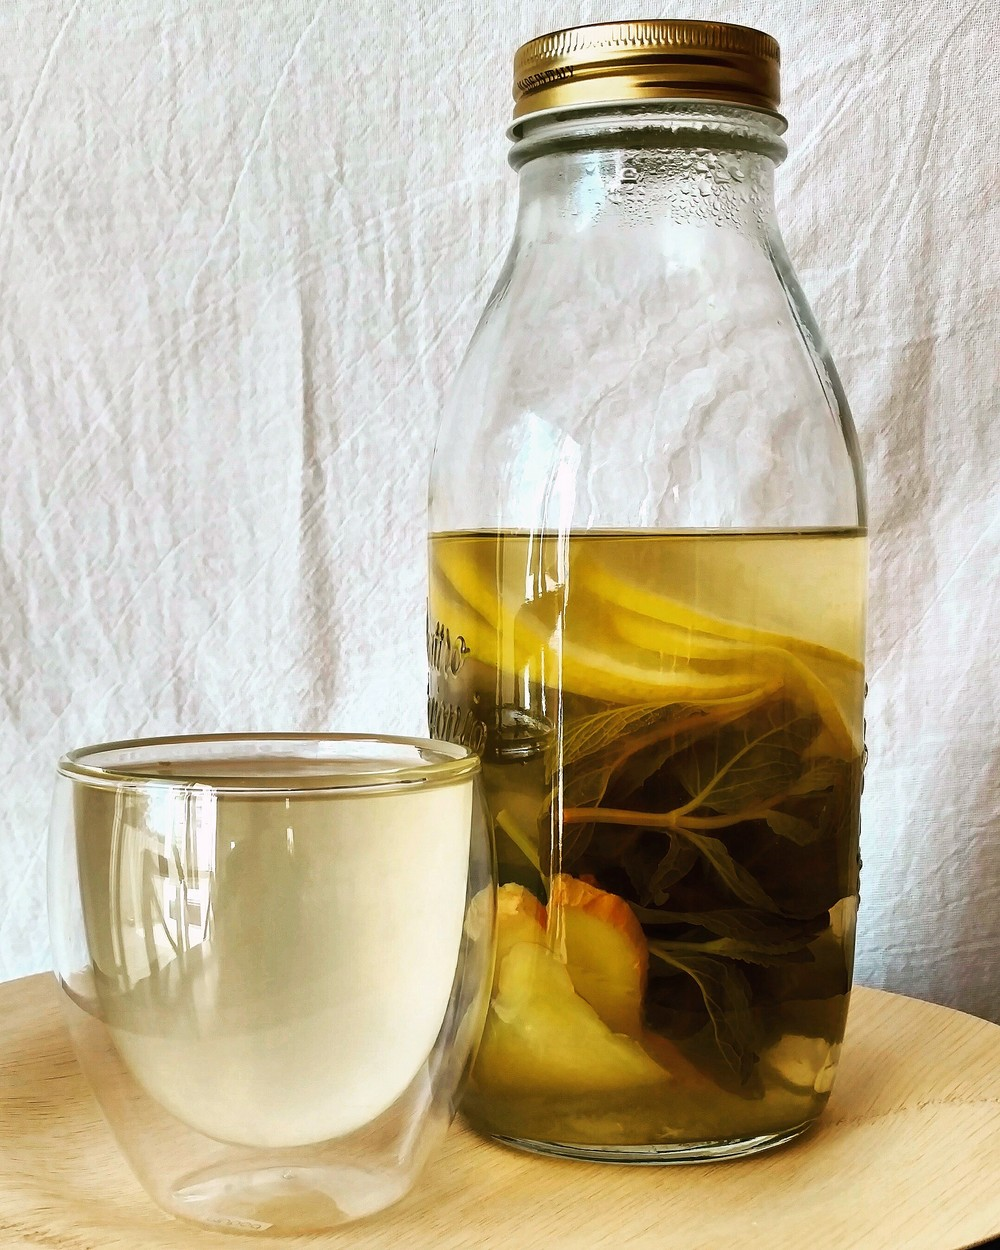 Lemonginger mint water